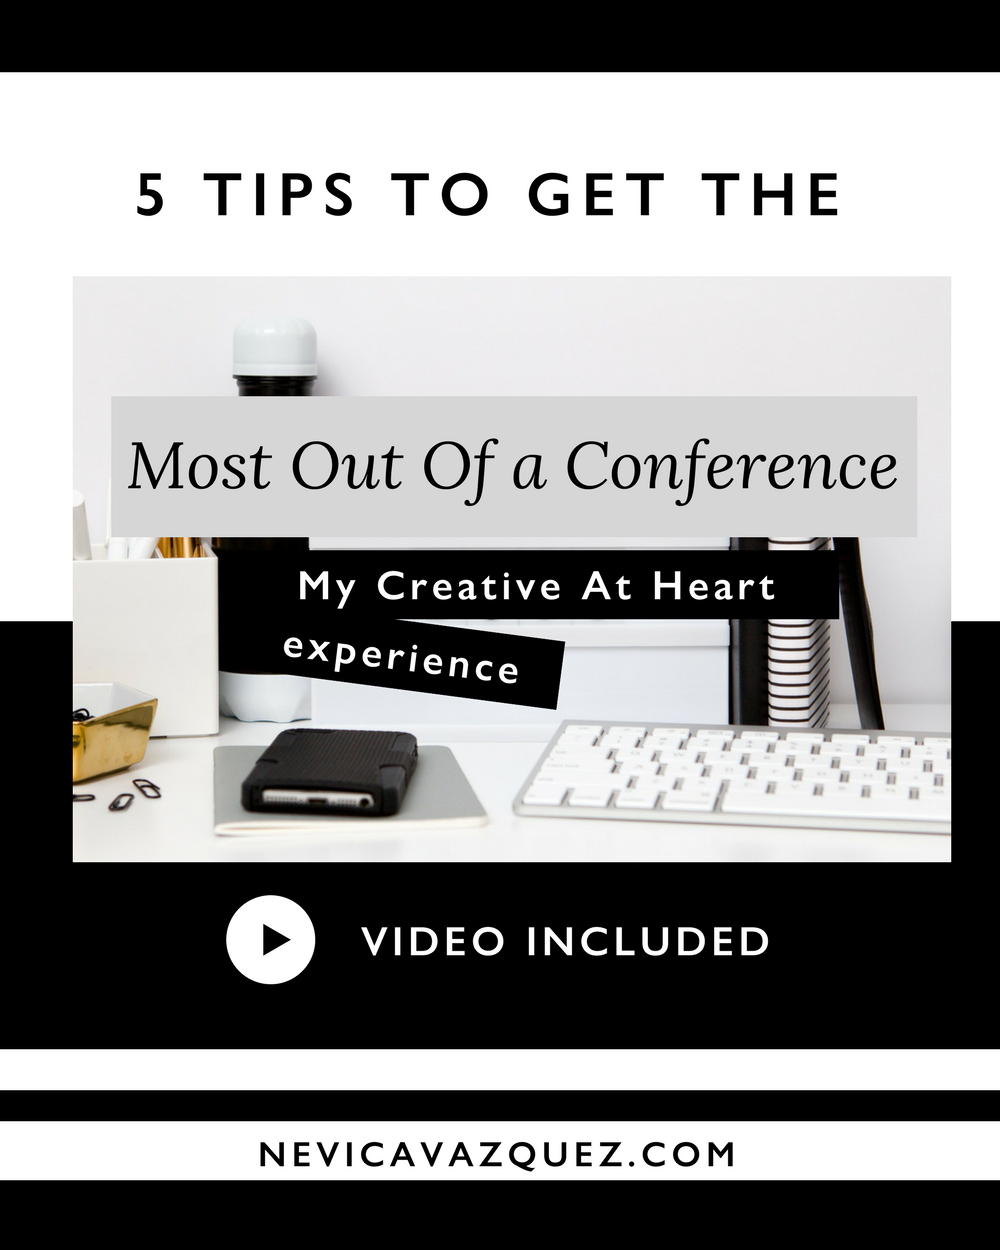 5 Tips To Getting The Most Out Of a Conference – My Creative at Heart Experience